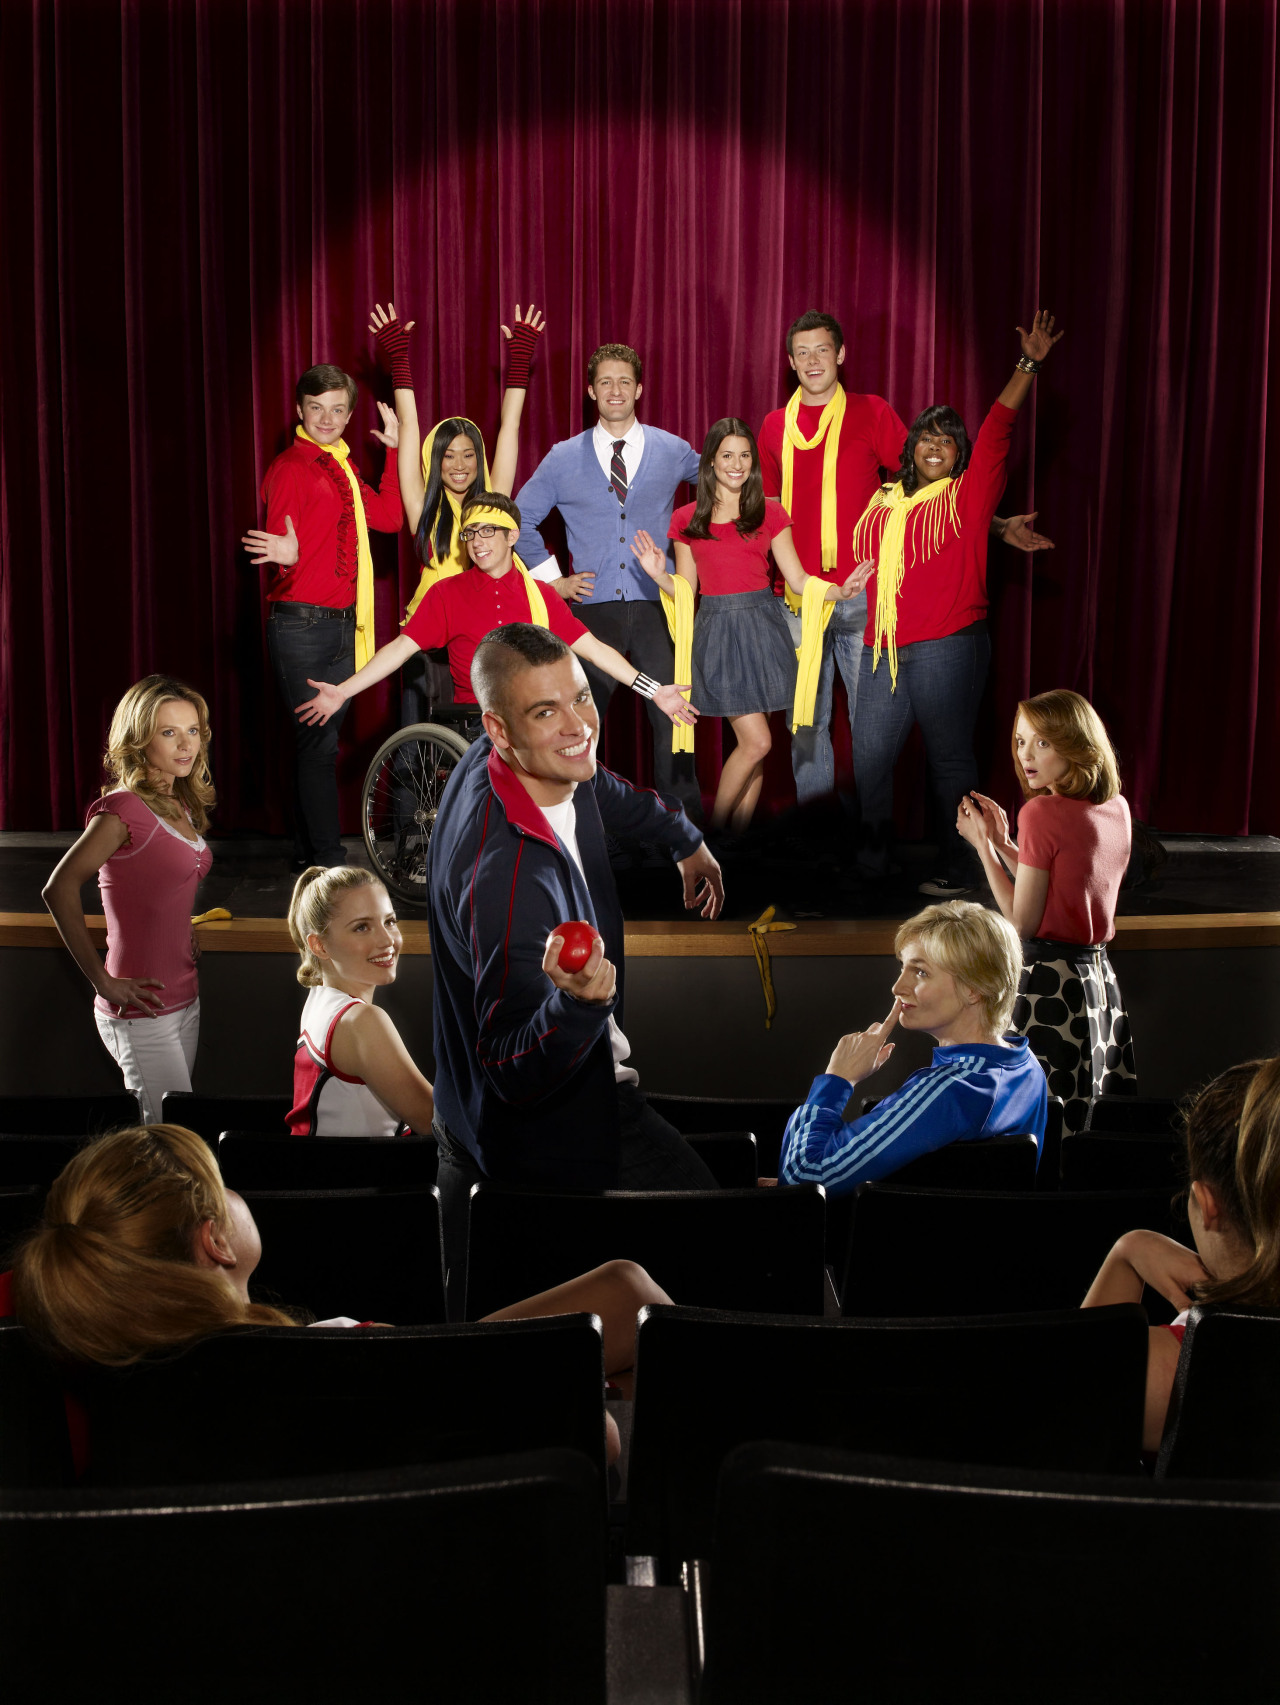 memoirsofabadkid:  4 Years of Glee. Smiles, Tears, Screams, Songs, I have literally felt each and every emotion possible while watching Glee. Thank you to everyone involved.